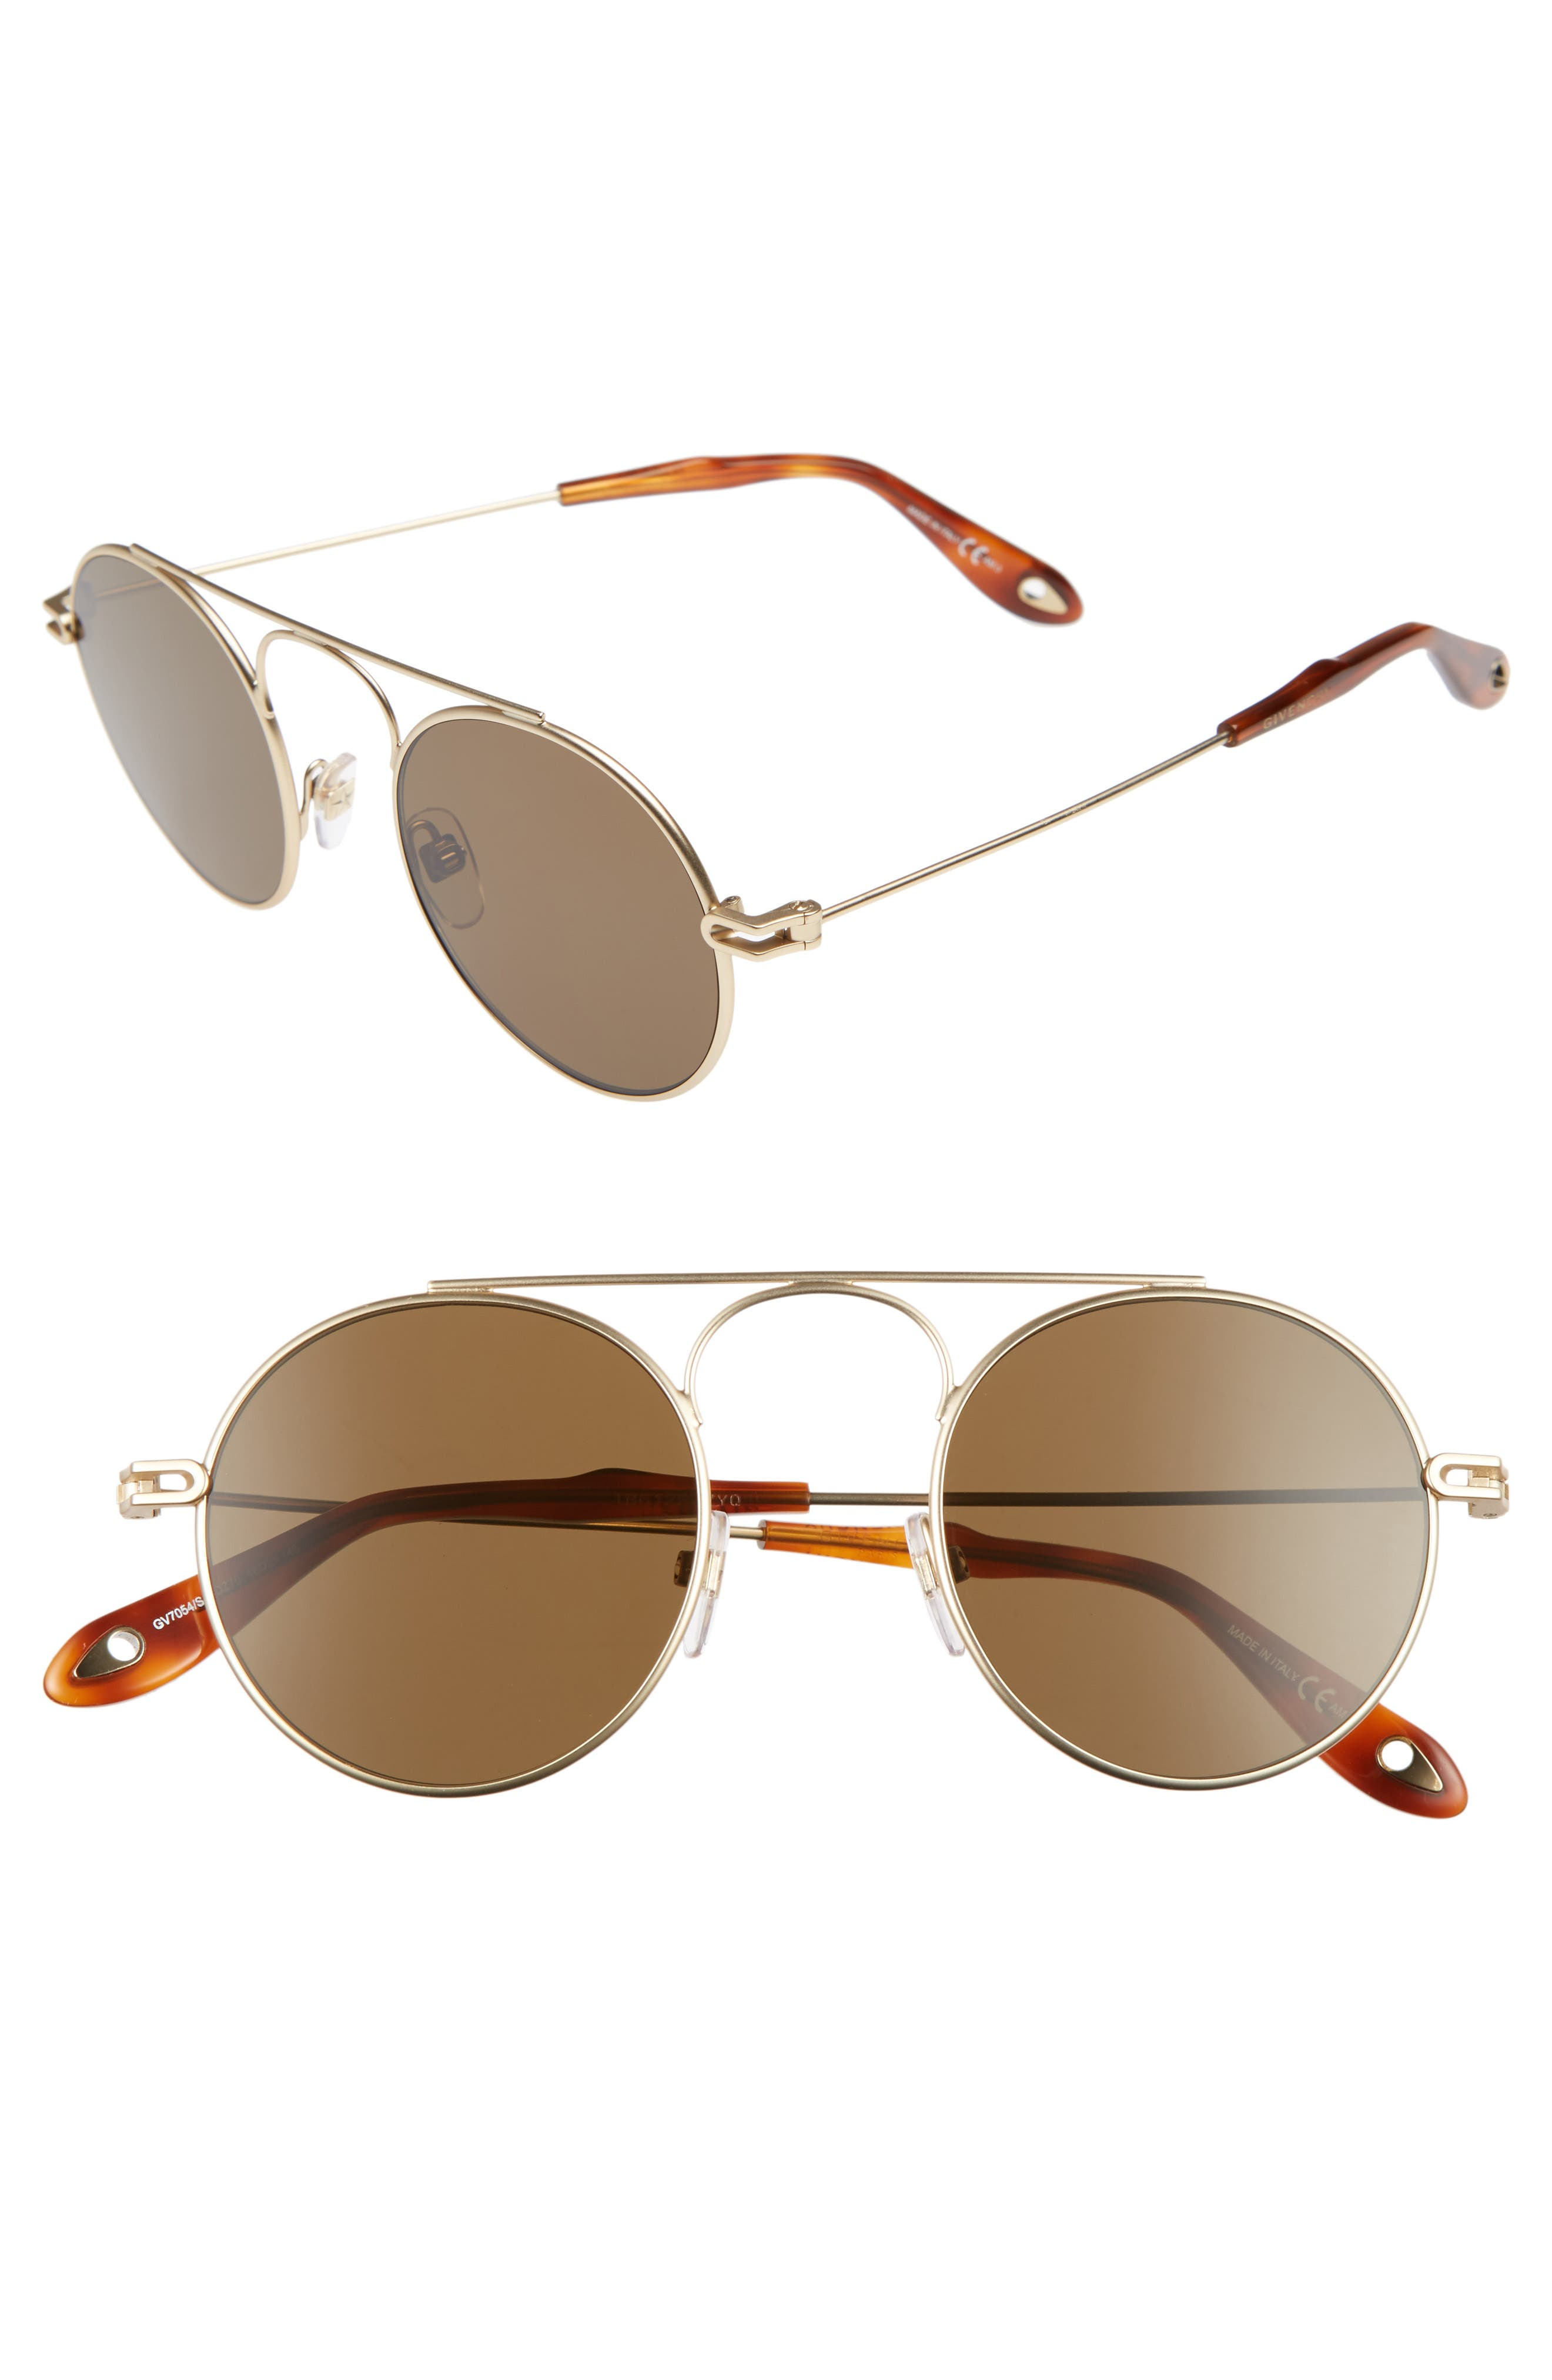 48mm Retro Sunglasses,                             Main thumbnail 1, color,                             SMTT GOLD